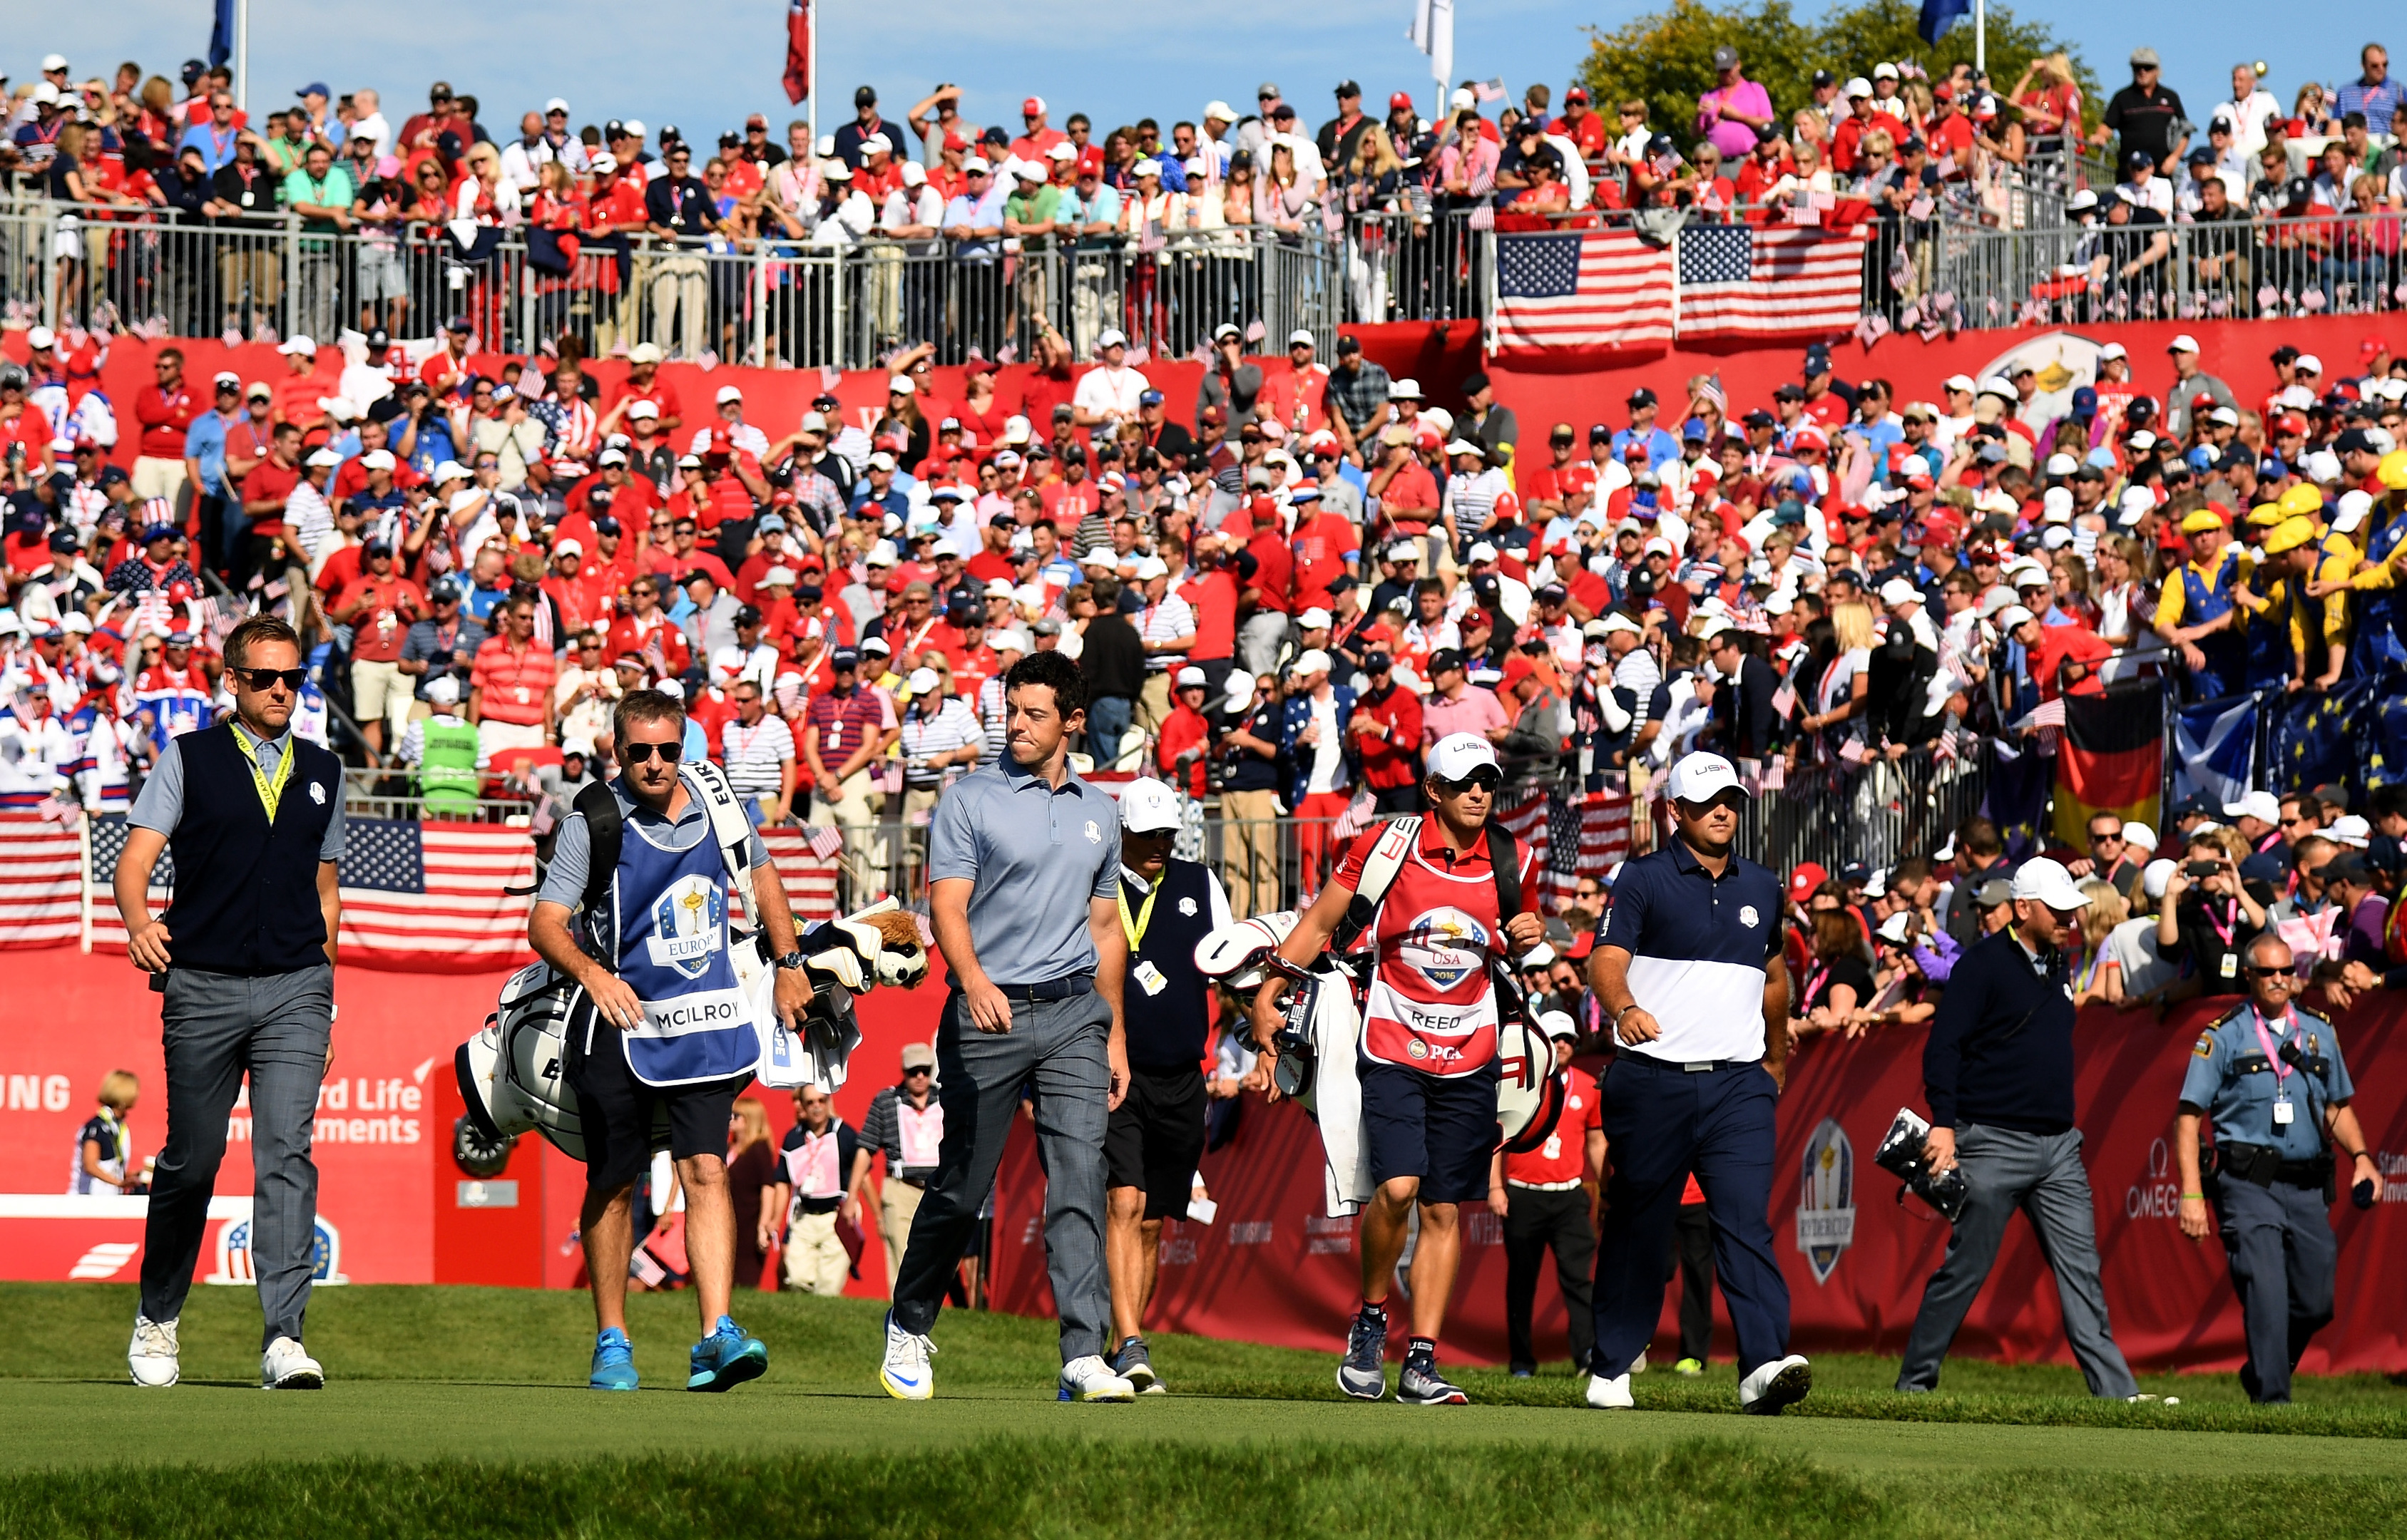 Rory McIlroy and Patrick Reed leavce the first tee, one of the few areas at Hazeltine that was noisy but respectful all weekend.